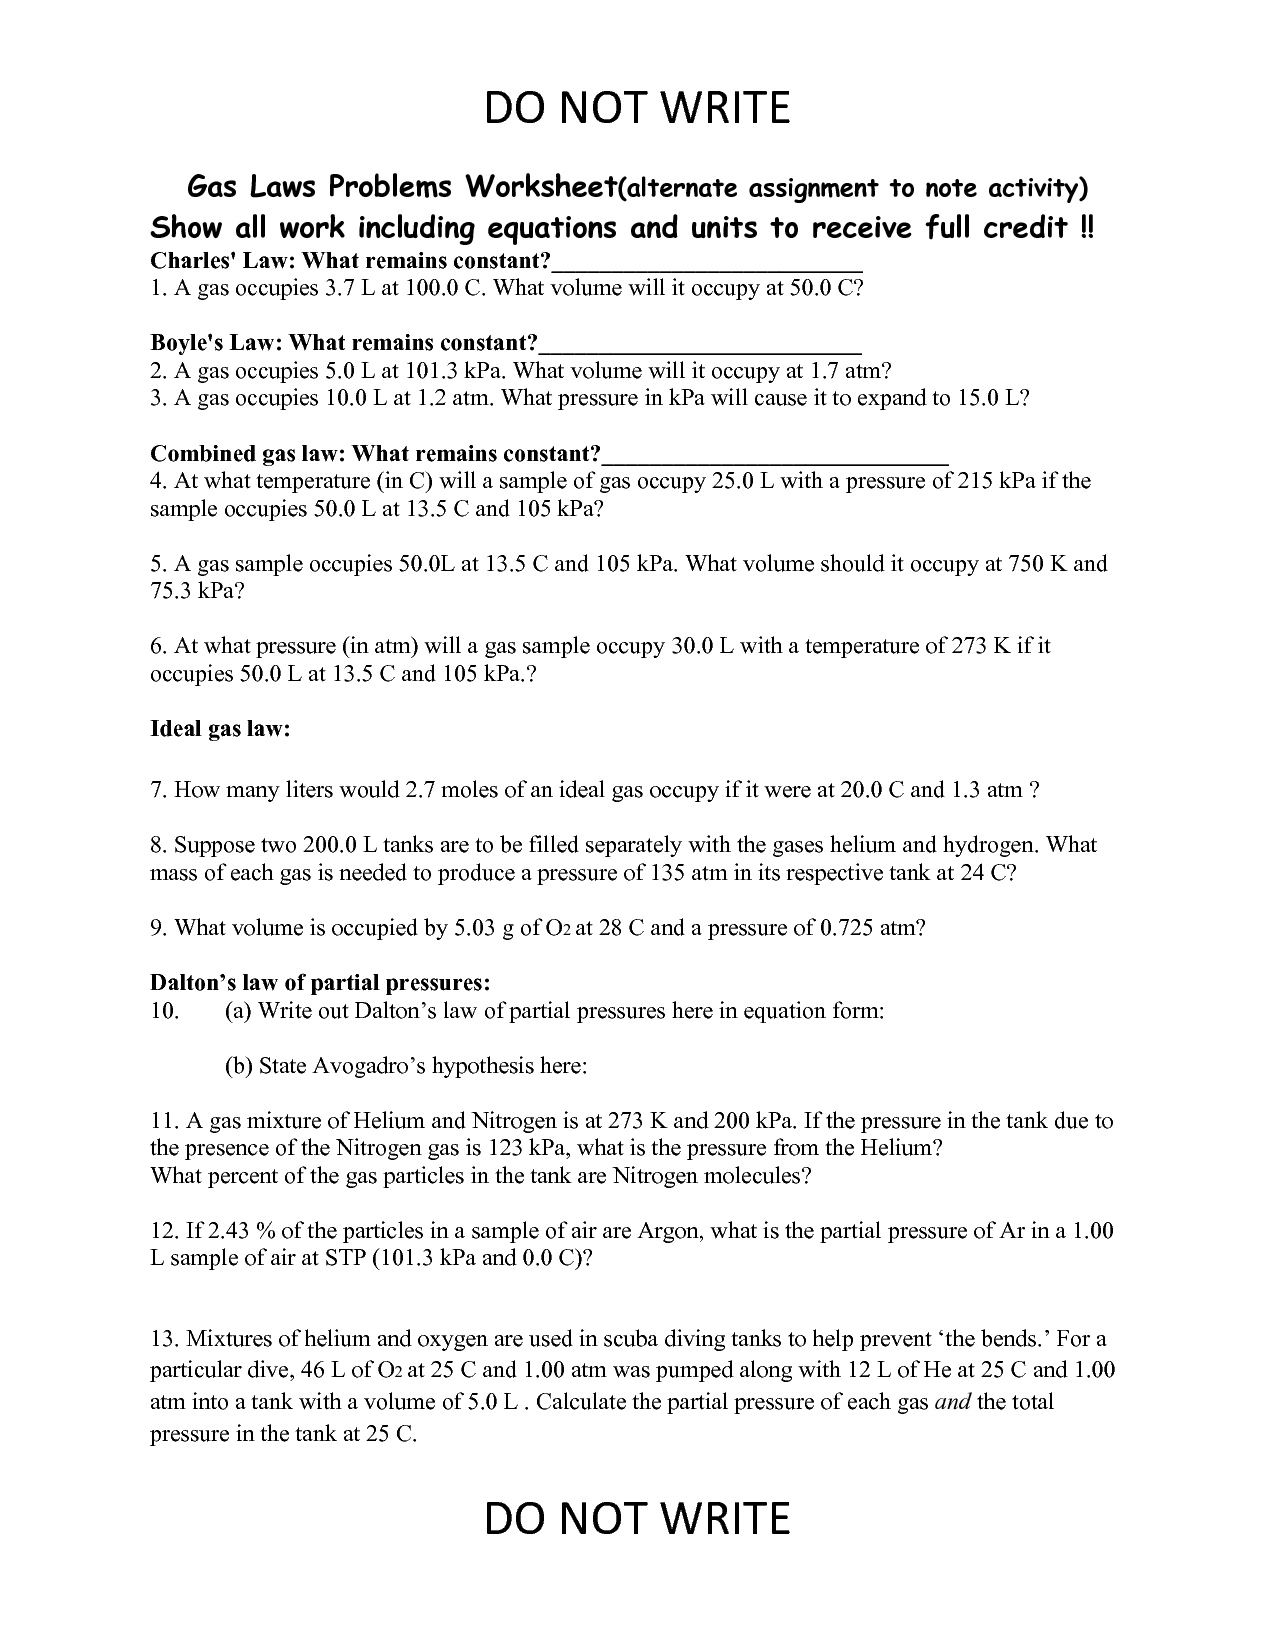 14 Best Images of Boyles Law Worksheet Answers  Ideal Gas Law Worksheet Answer Key, Boyles